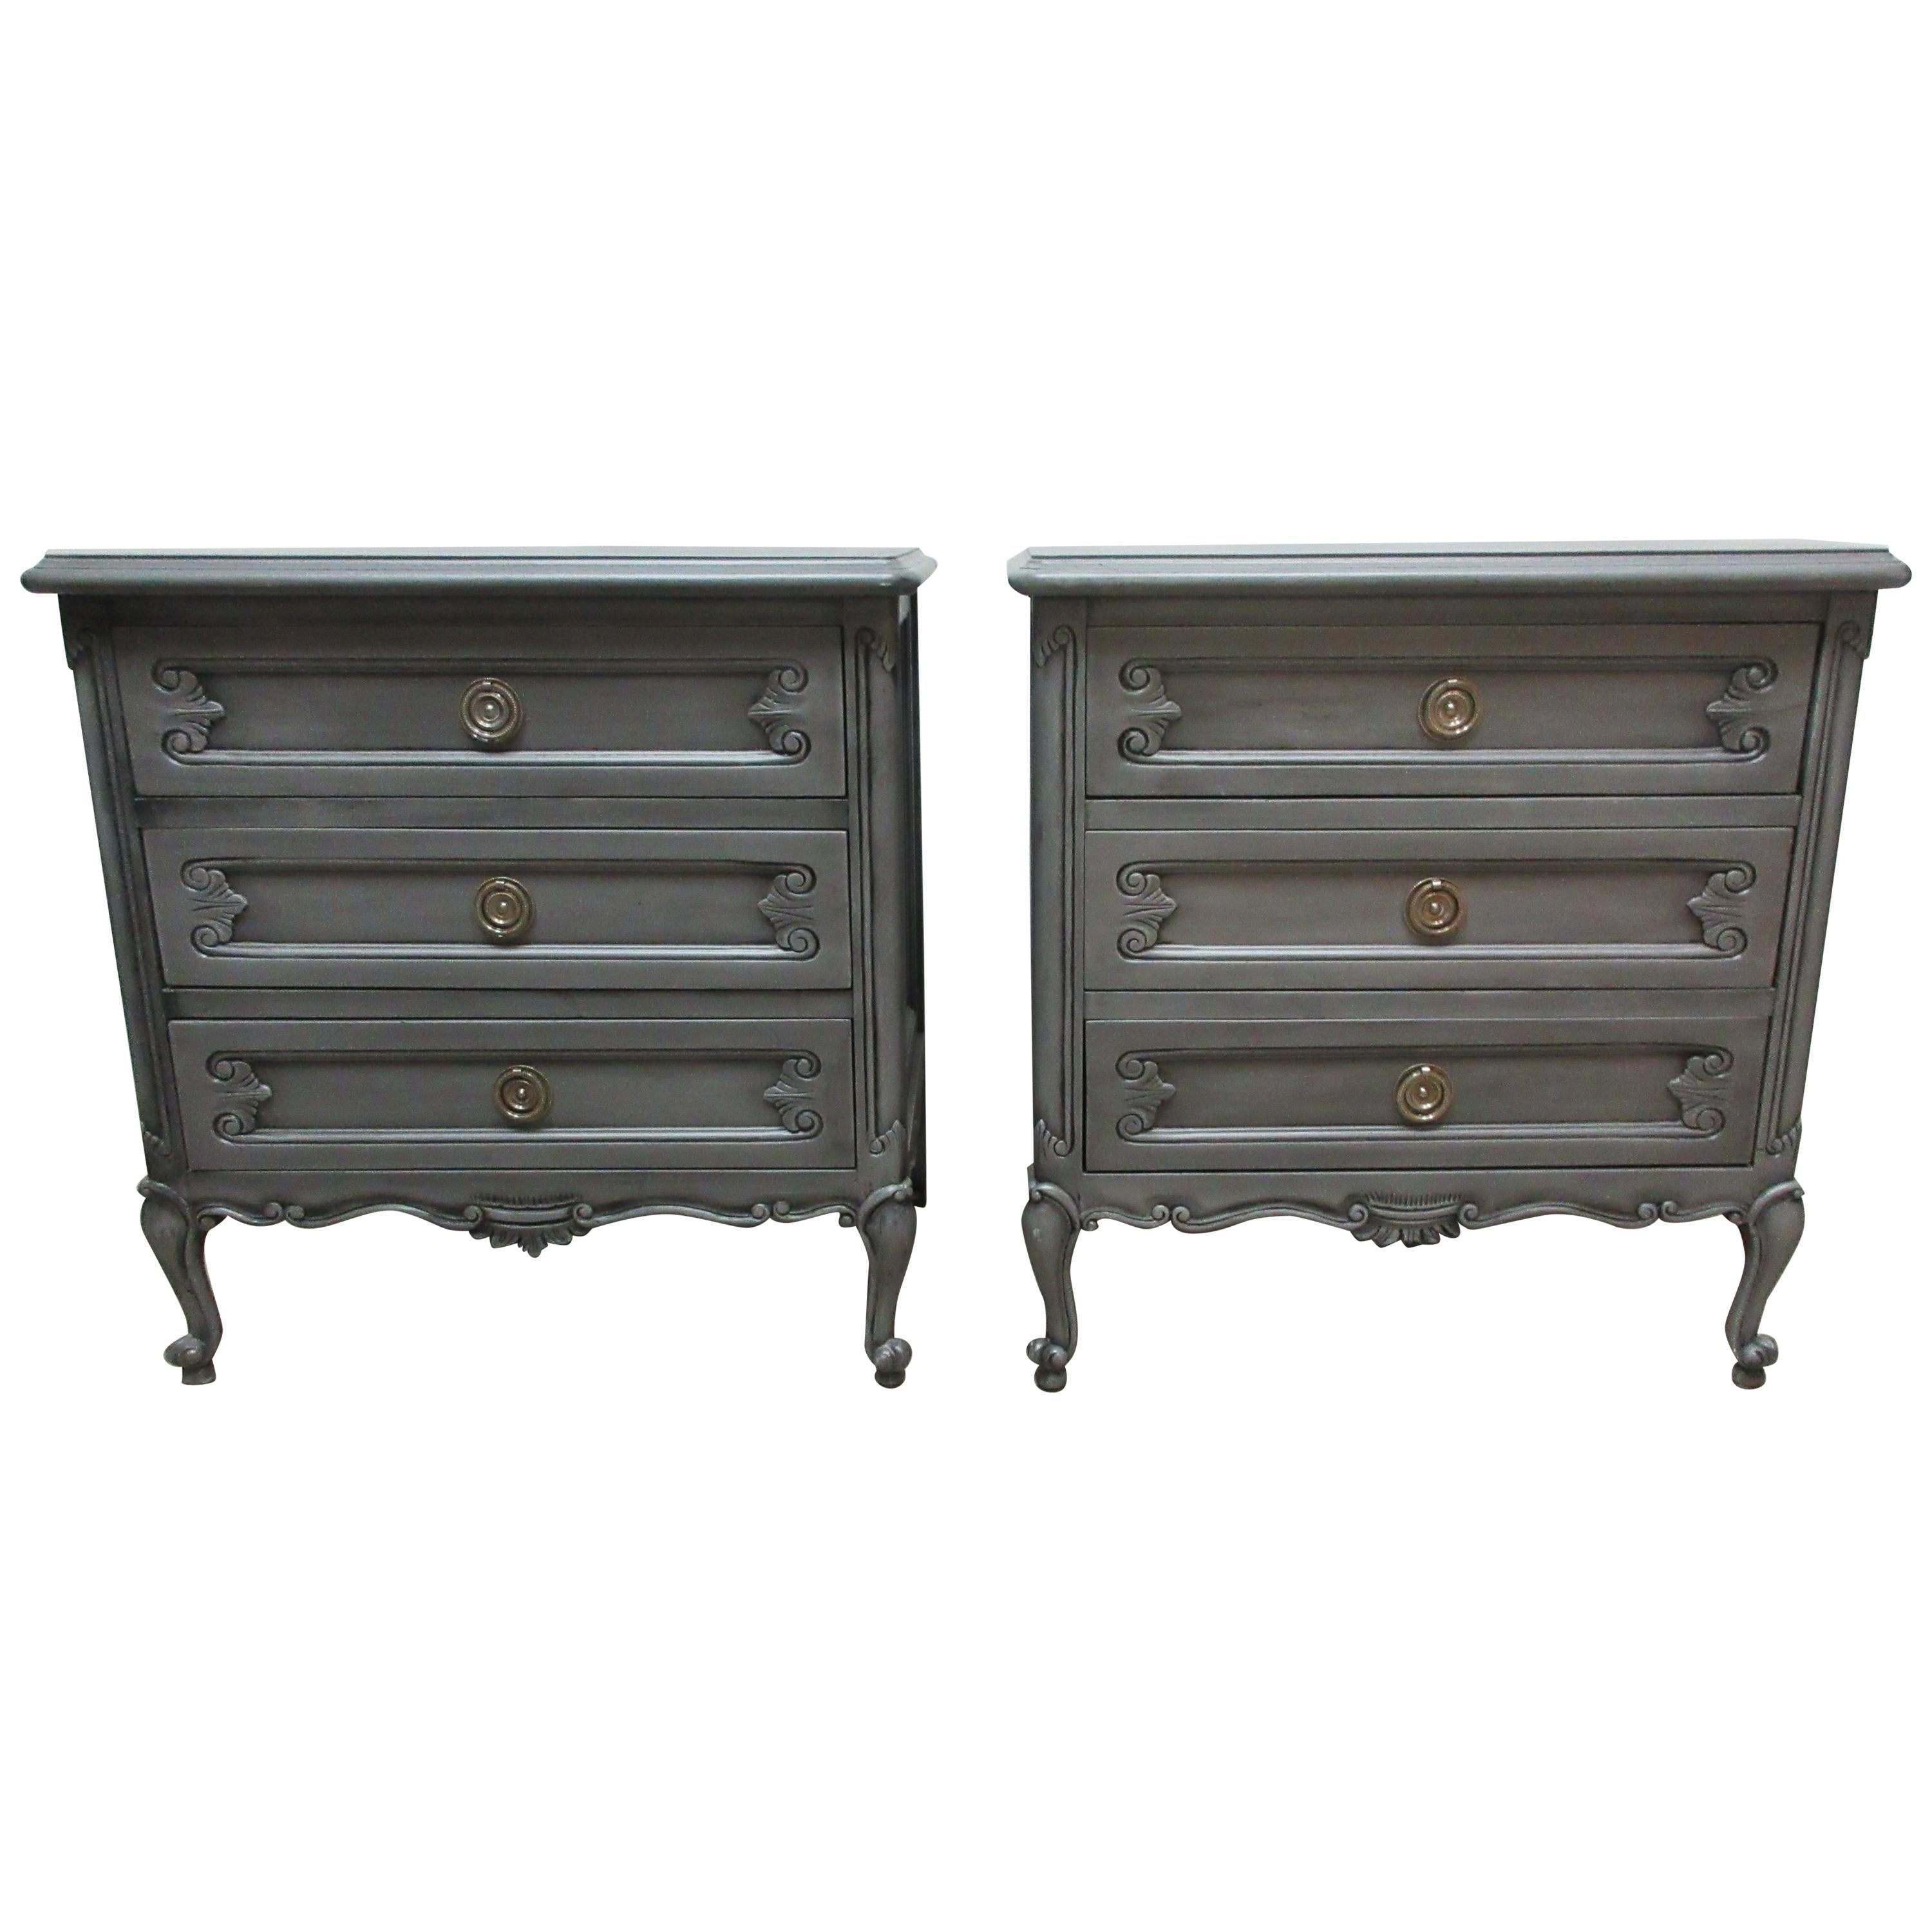 Rococo Style Chest of Drawers